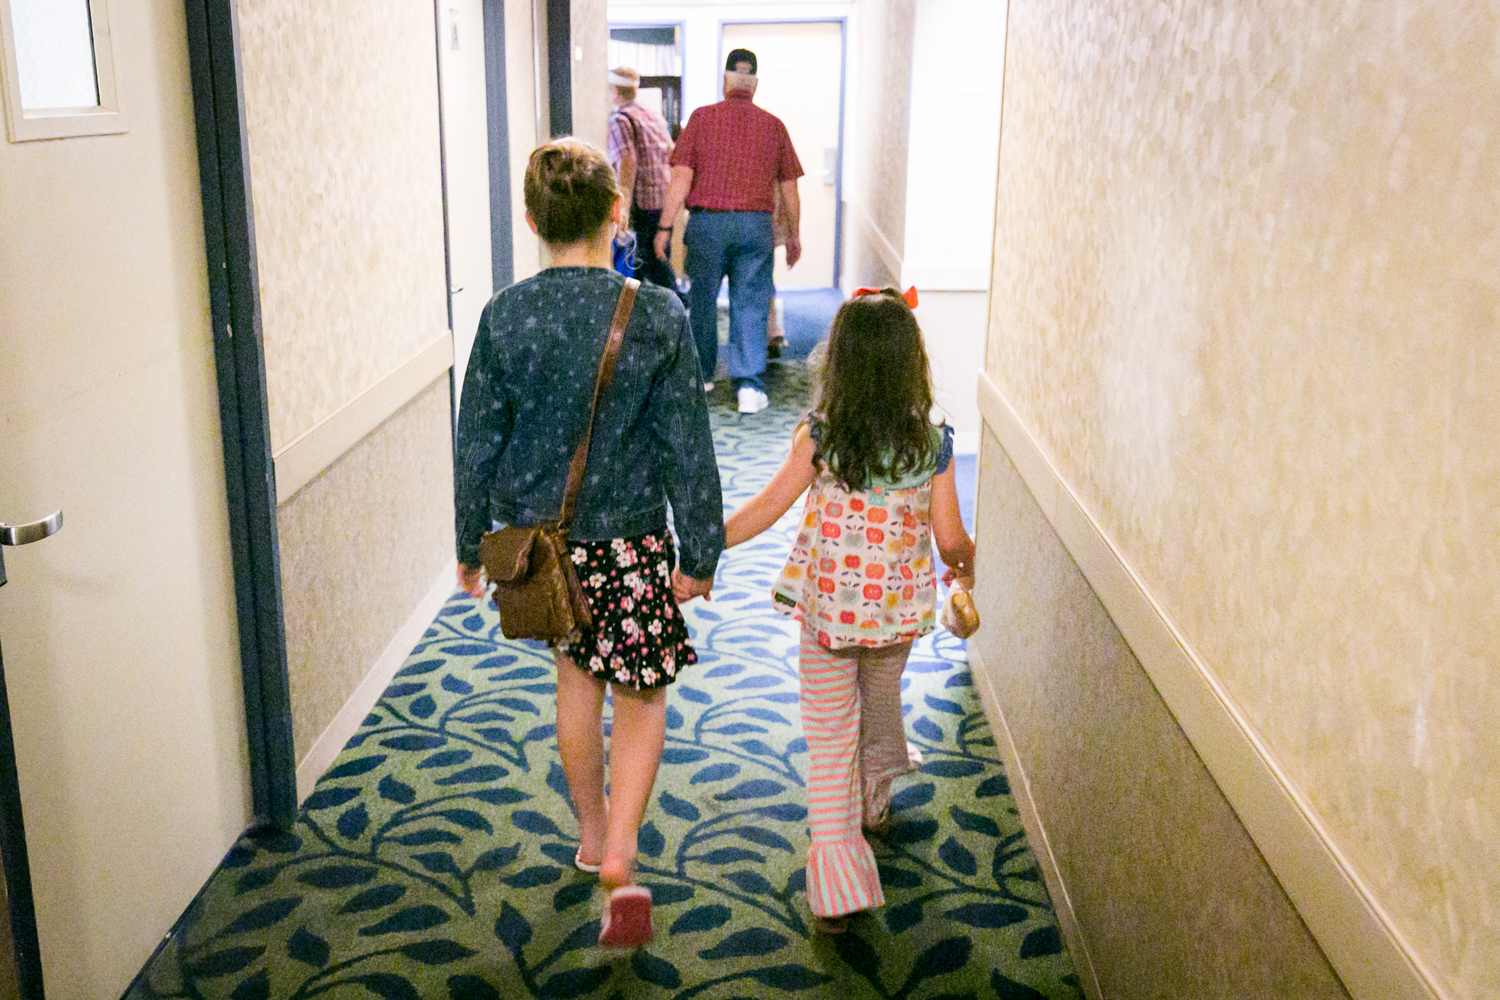 Two little girls holding hands walking down a hallway